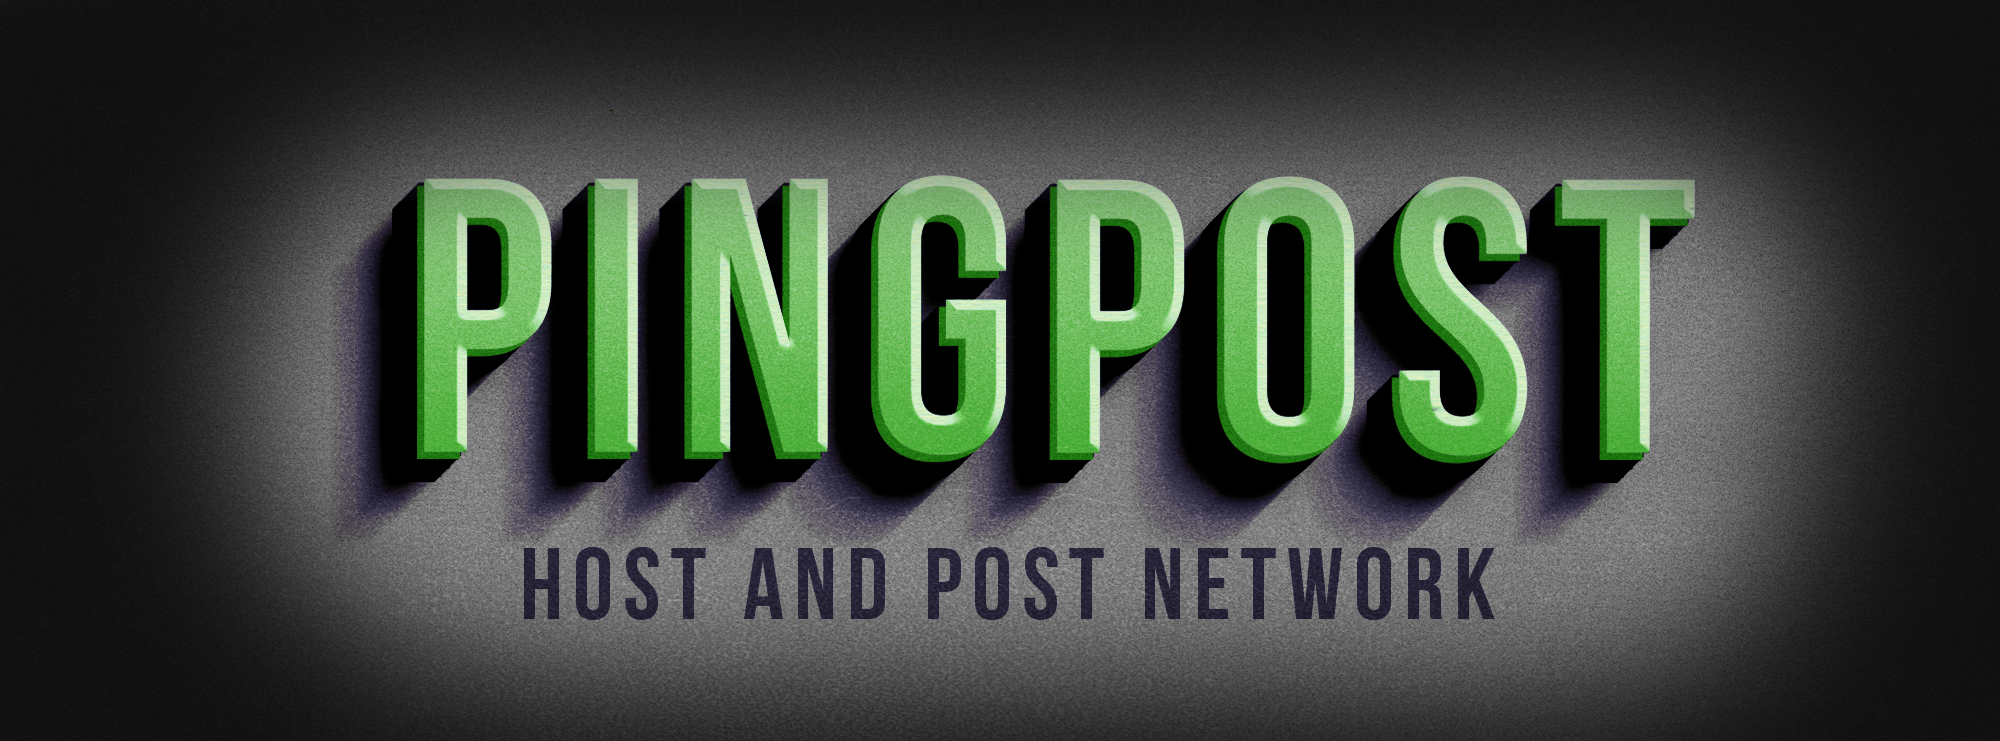 What Is PingPost?